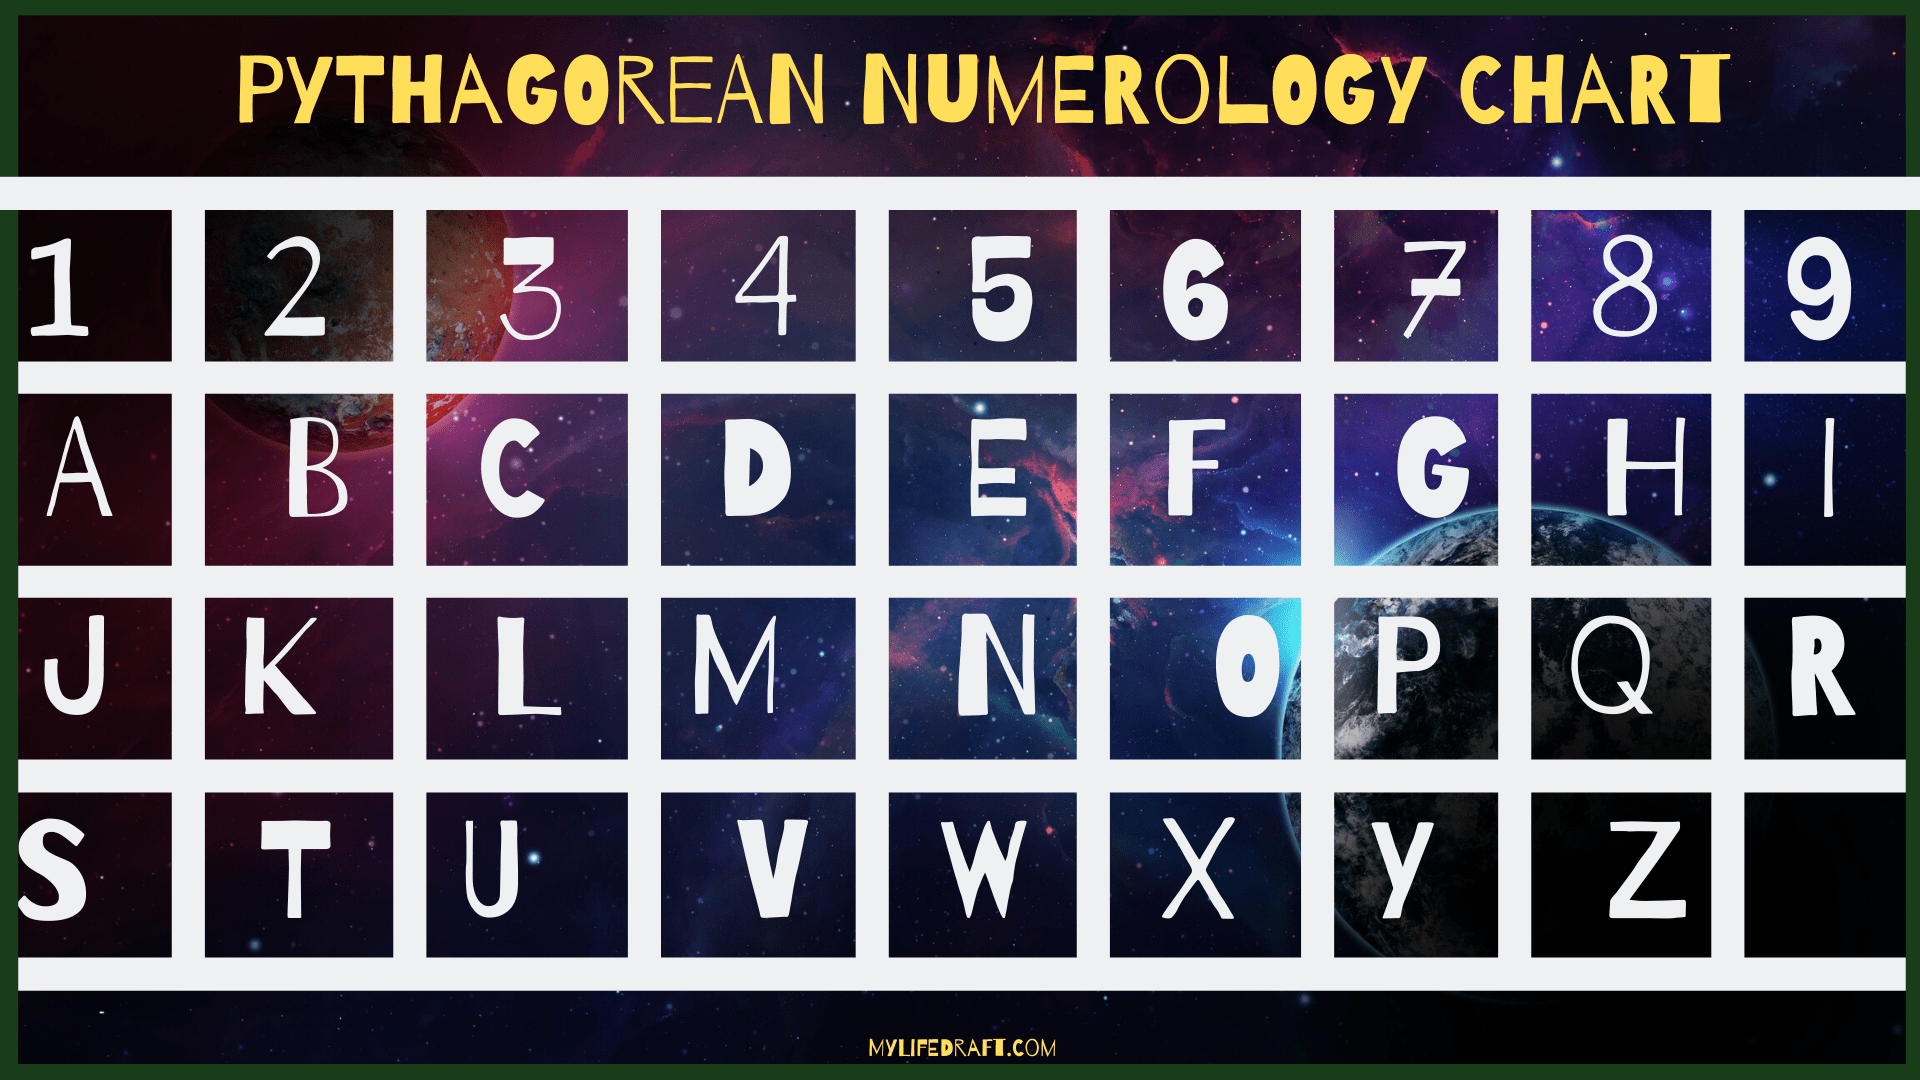 Pythagorean and Chaldean Numerology chart and how to use them.